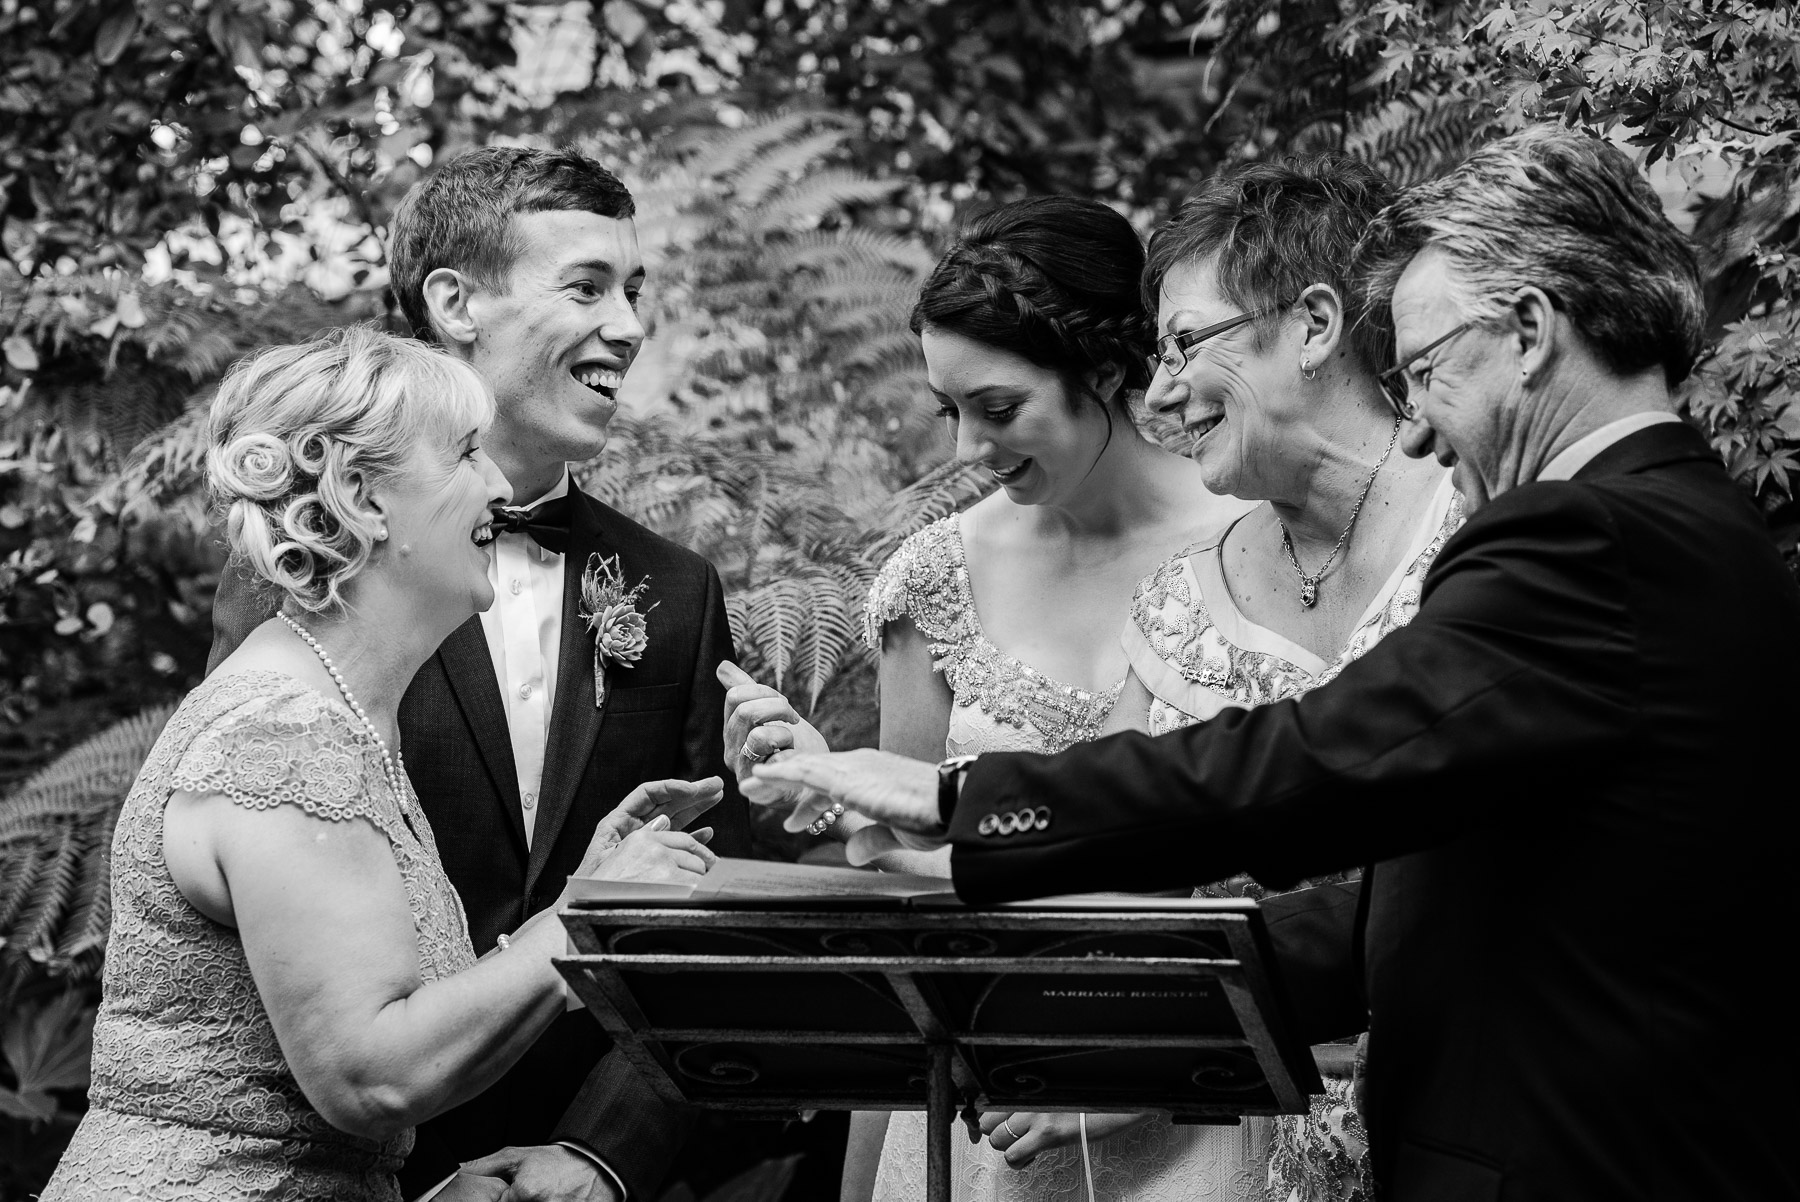 Justin_and_Jim_Best_Of_Wedding_Photography-72.jpg